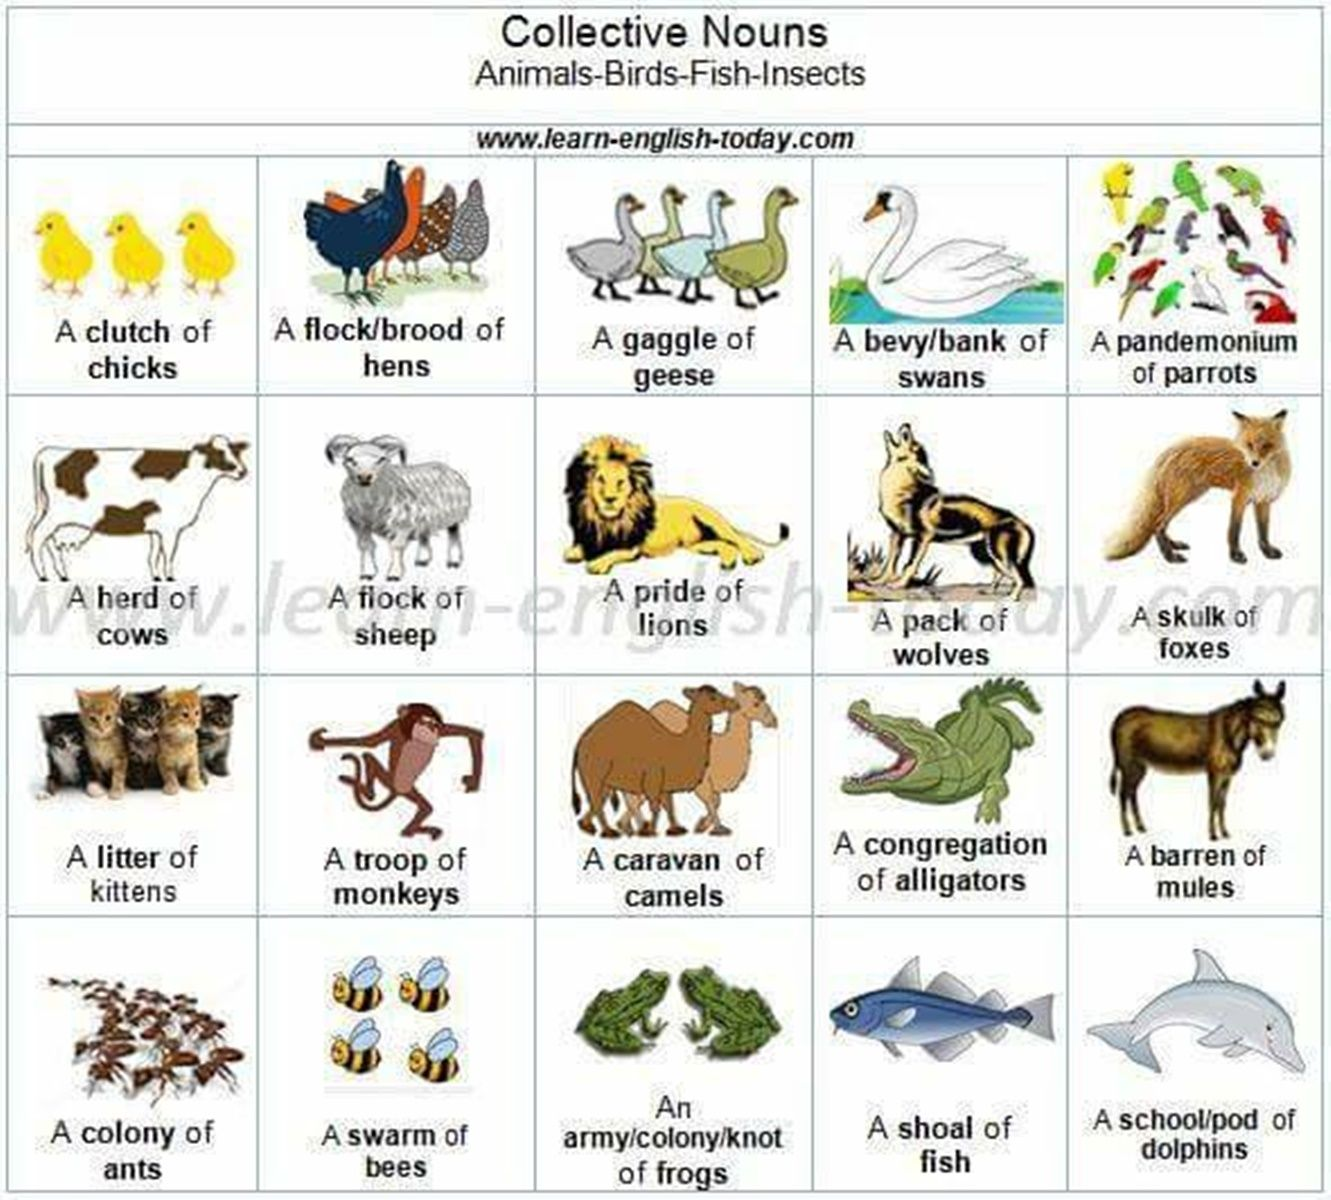 Forum . Fluent LandCollective Nouns in English